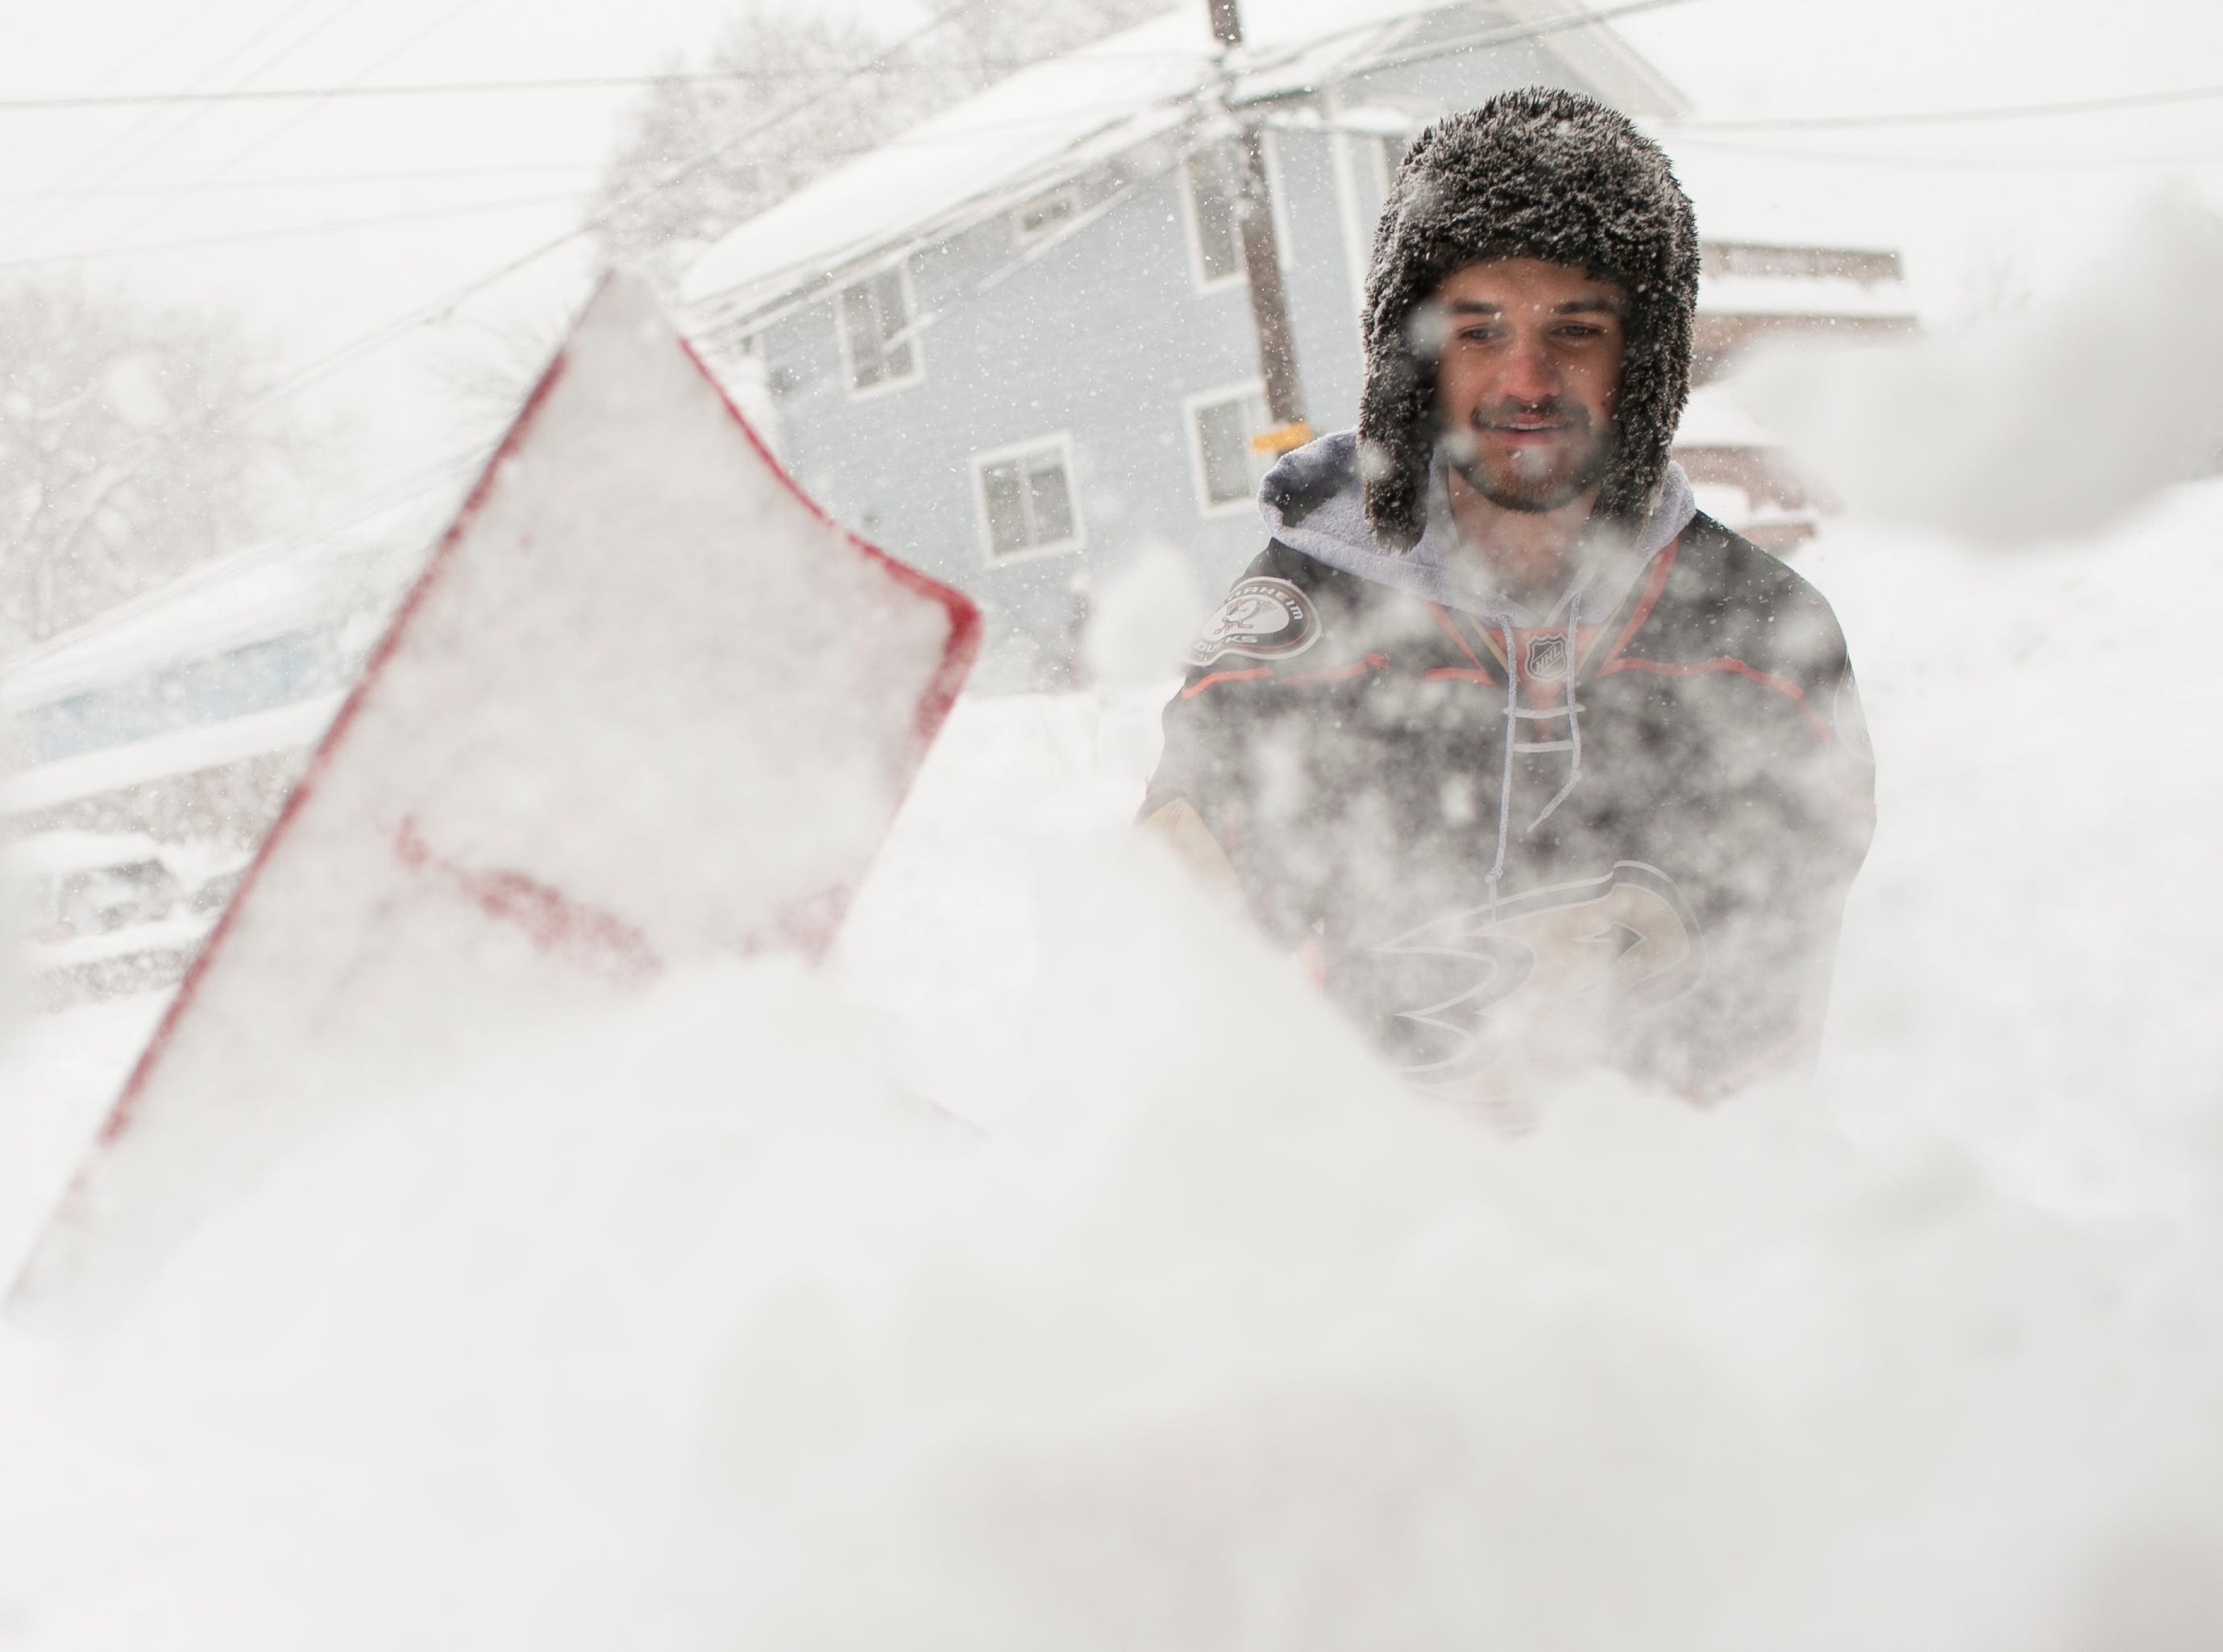 Northern Arizona University student Reid Petersen shovels snow in front of his home in Flagstaff on Feb. 21, 2019. A storm was expected to bring 20-30 inches of snow around northern Arizona through Friday.